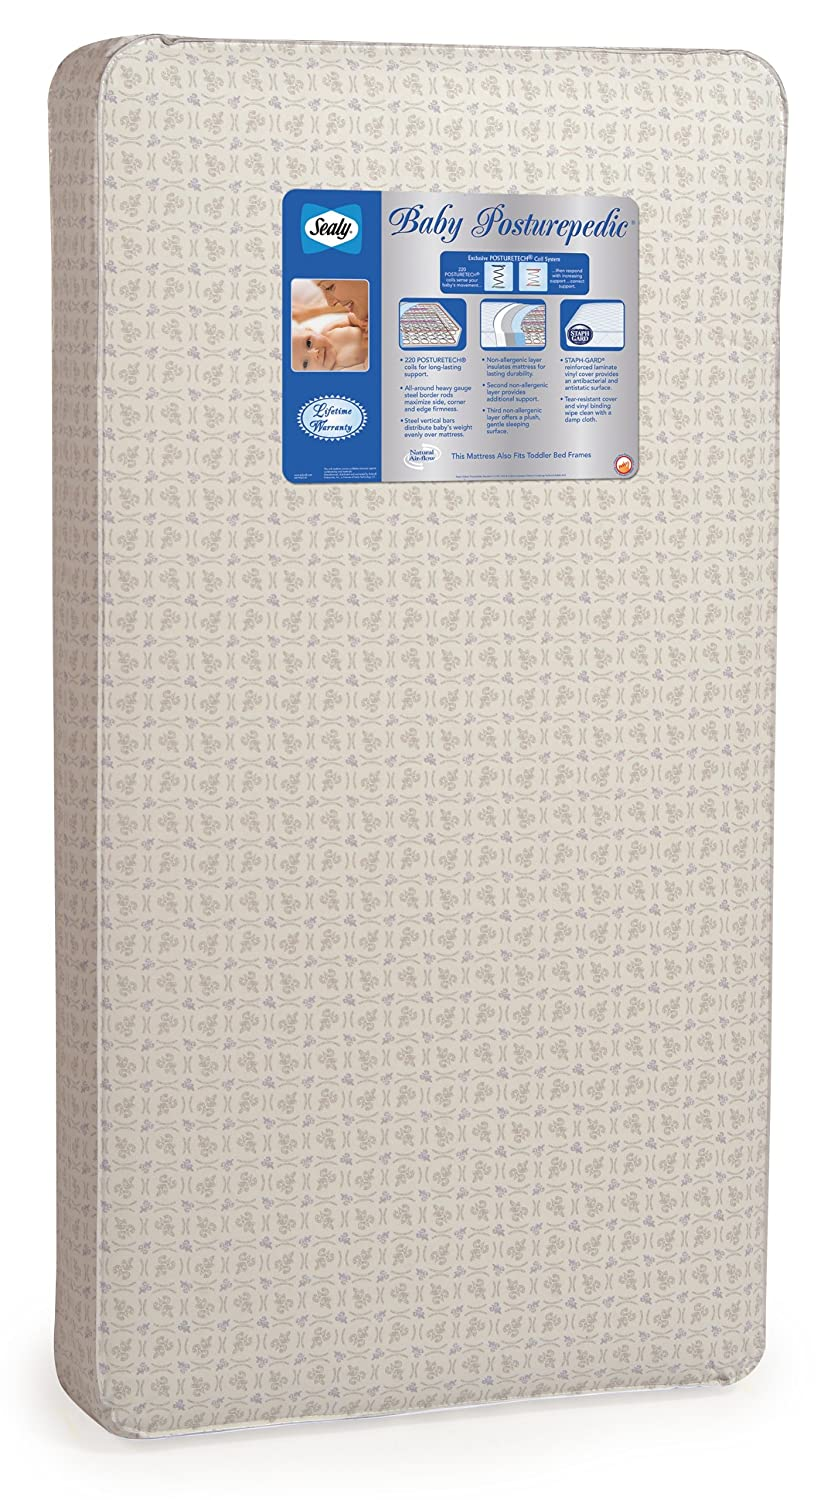 "Sealy Baby Posturepedic Infant/Toddler Crib Mattress -220 PostureTech Sensory Coils, Orthopedically Designed Coil System, Hospital-Grade Waterproof Cover, Secure Edges, Anti-Sag System, 51.7""x27.3 51.7""x27.3 Kolcraft EM601-MFF1"